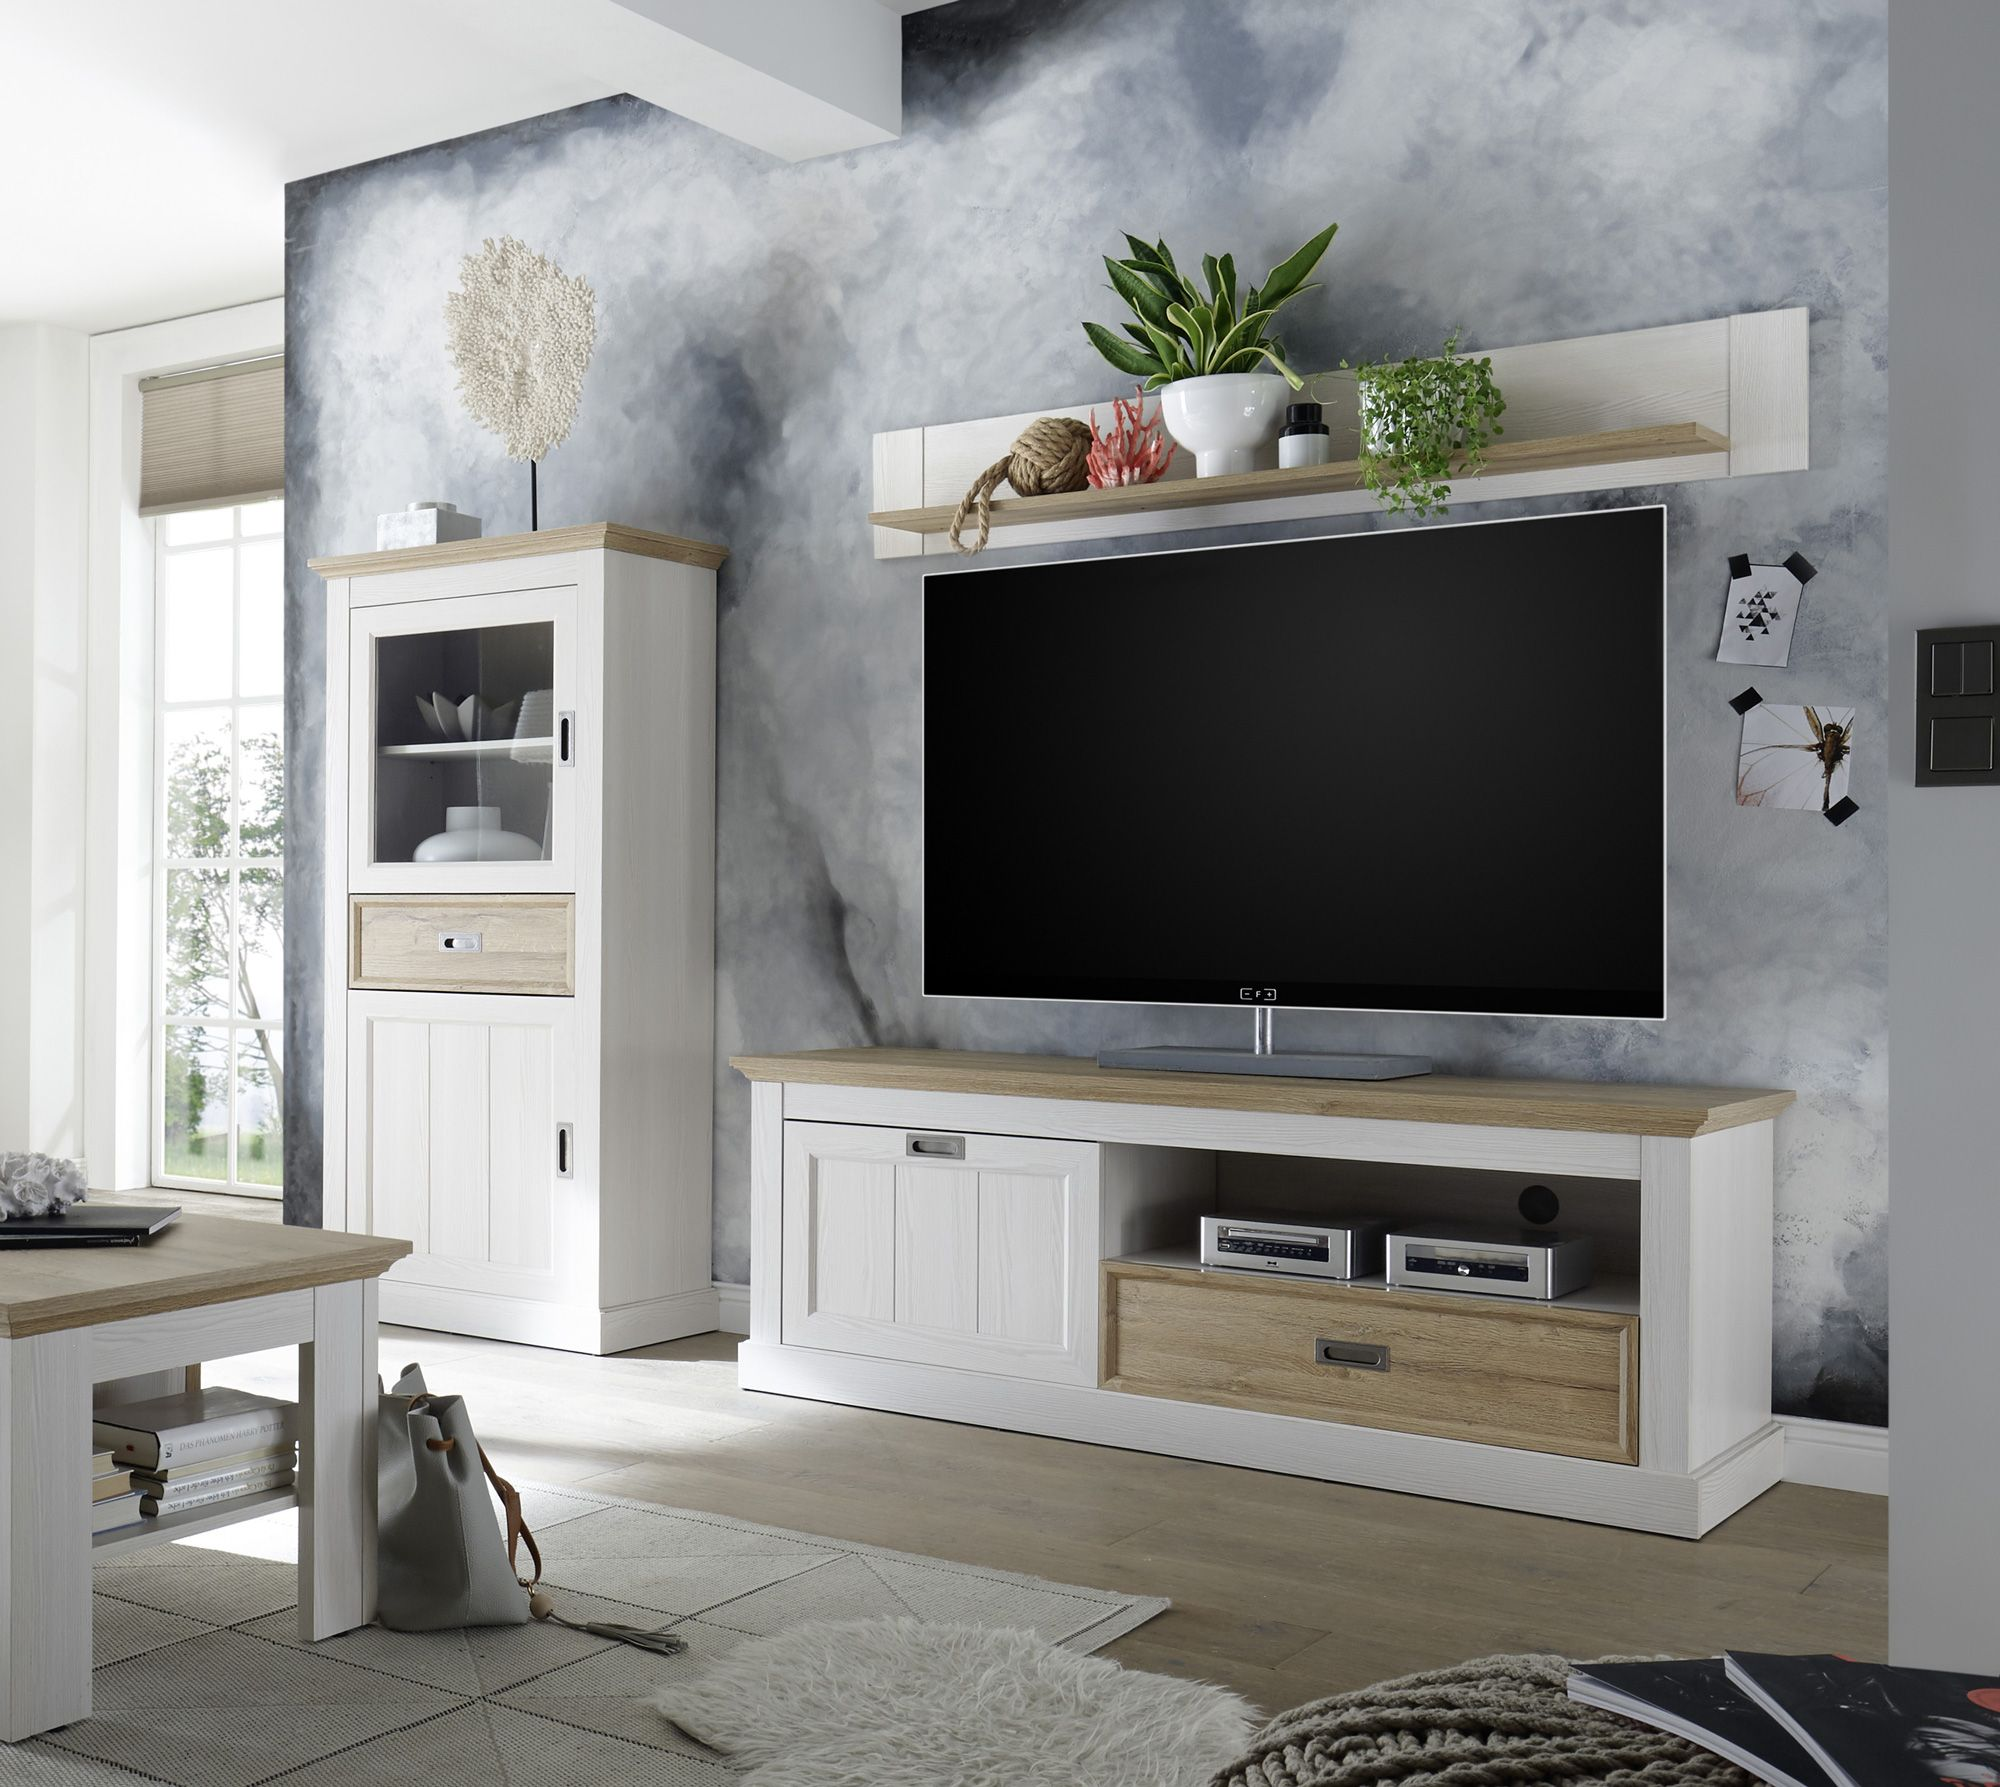 Campero Wohnwand 2 Material Mdf Weiss Wildeichefarbig Wohnen Wohnwand Weiss Wohnungsideen Wohnzimmer